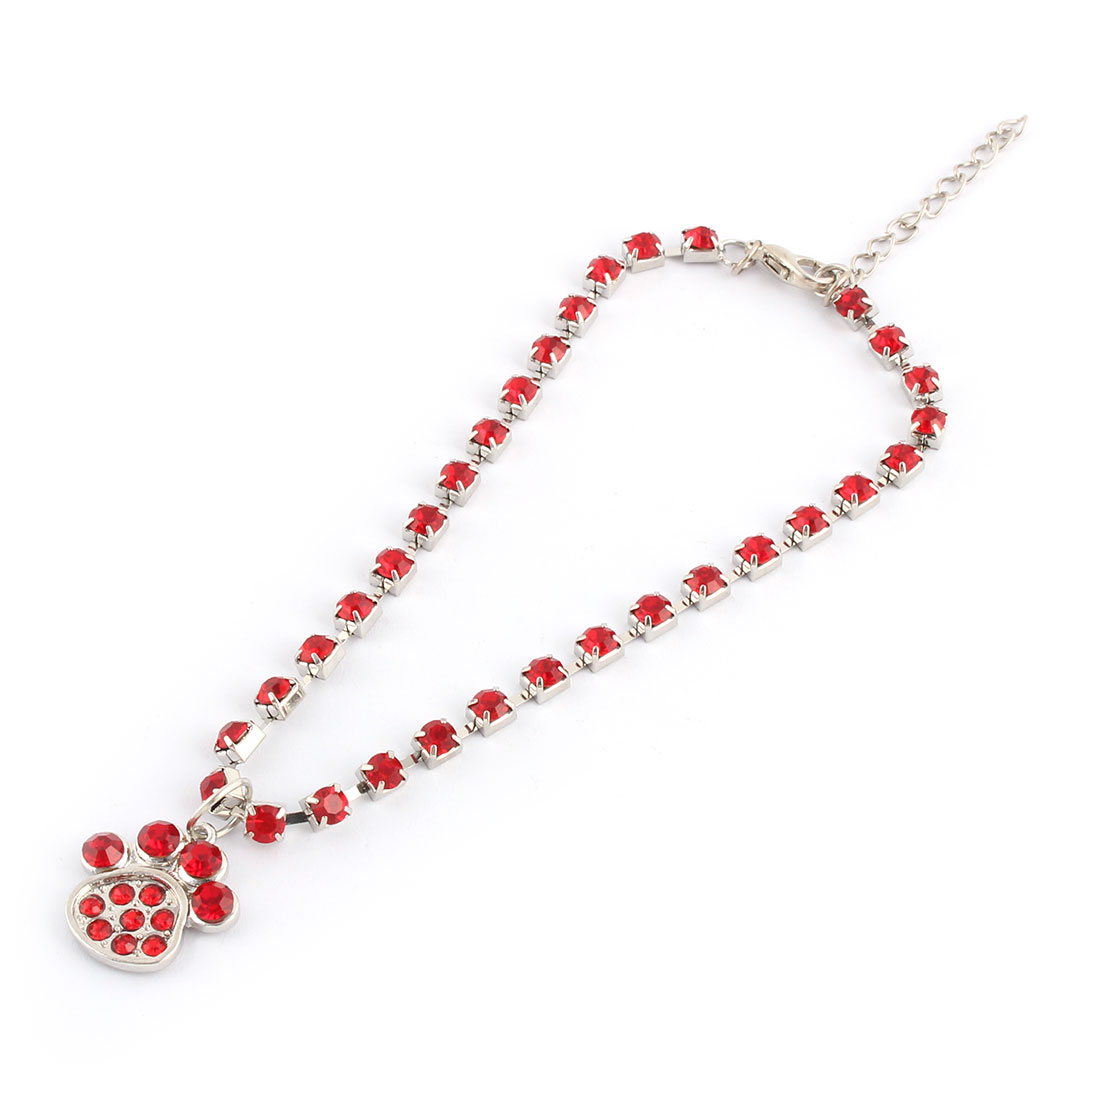 Christmas Party Rhinestone Mosaic Metal Paw Pendent Design Adjustable Pet Necklace Red